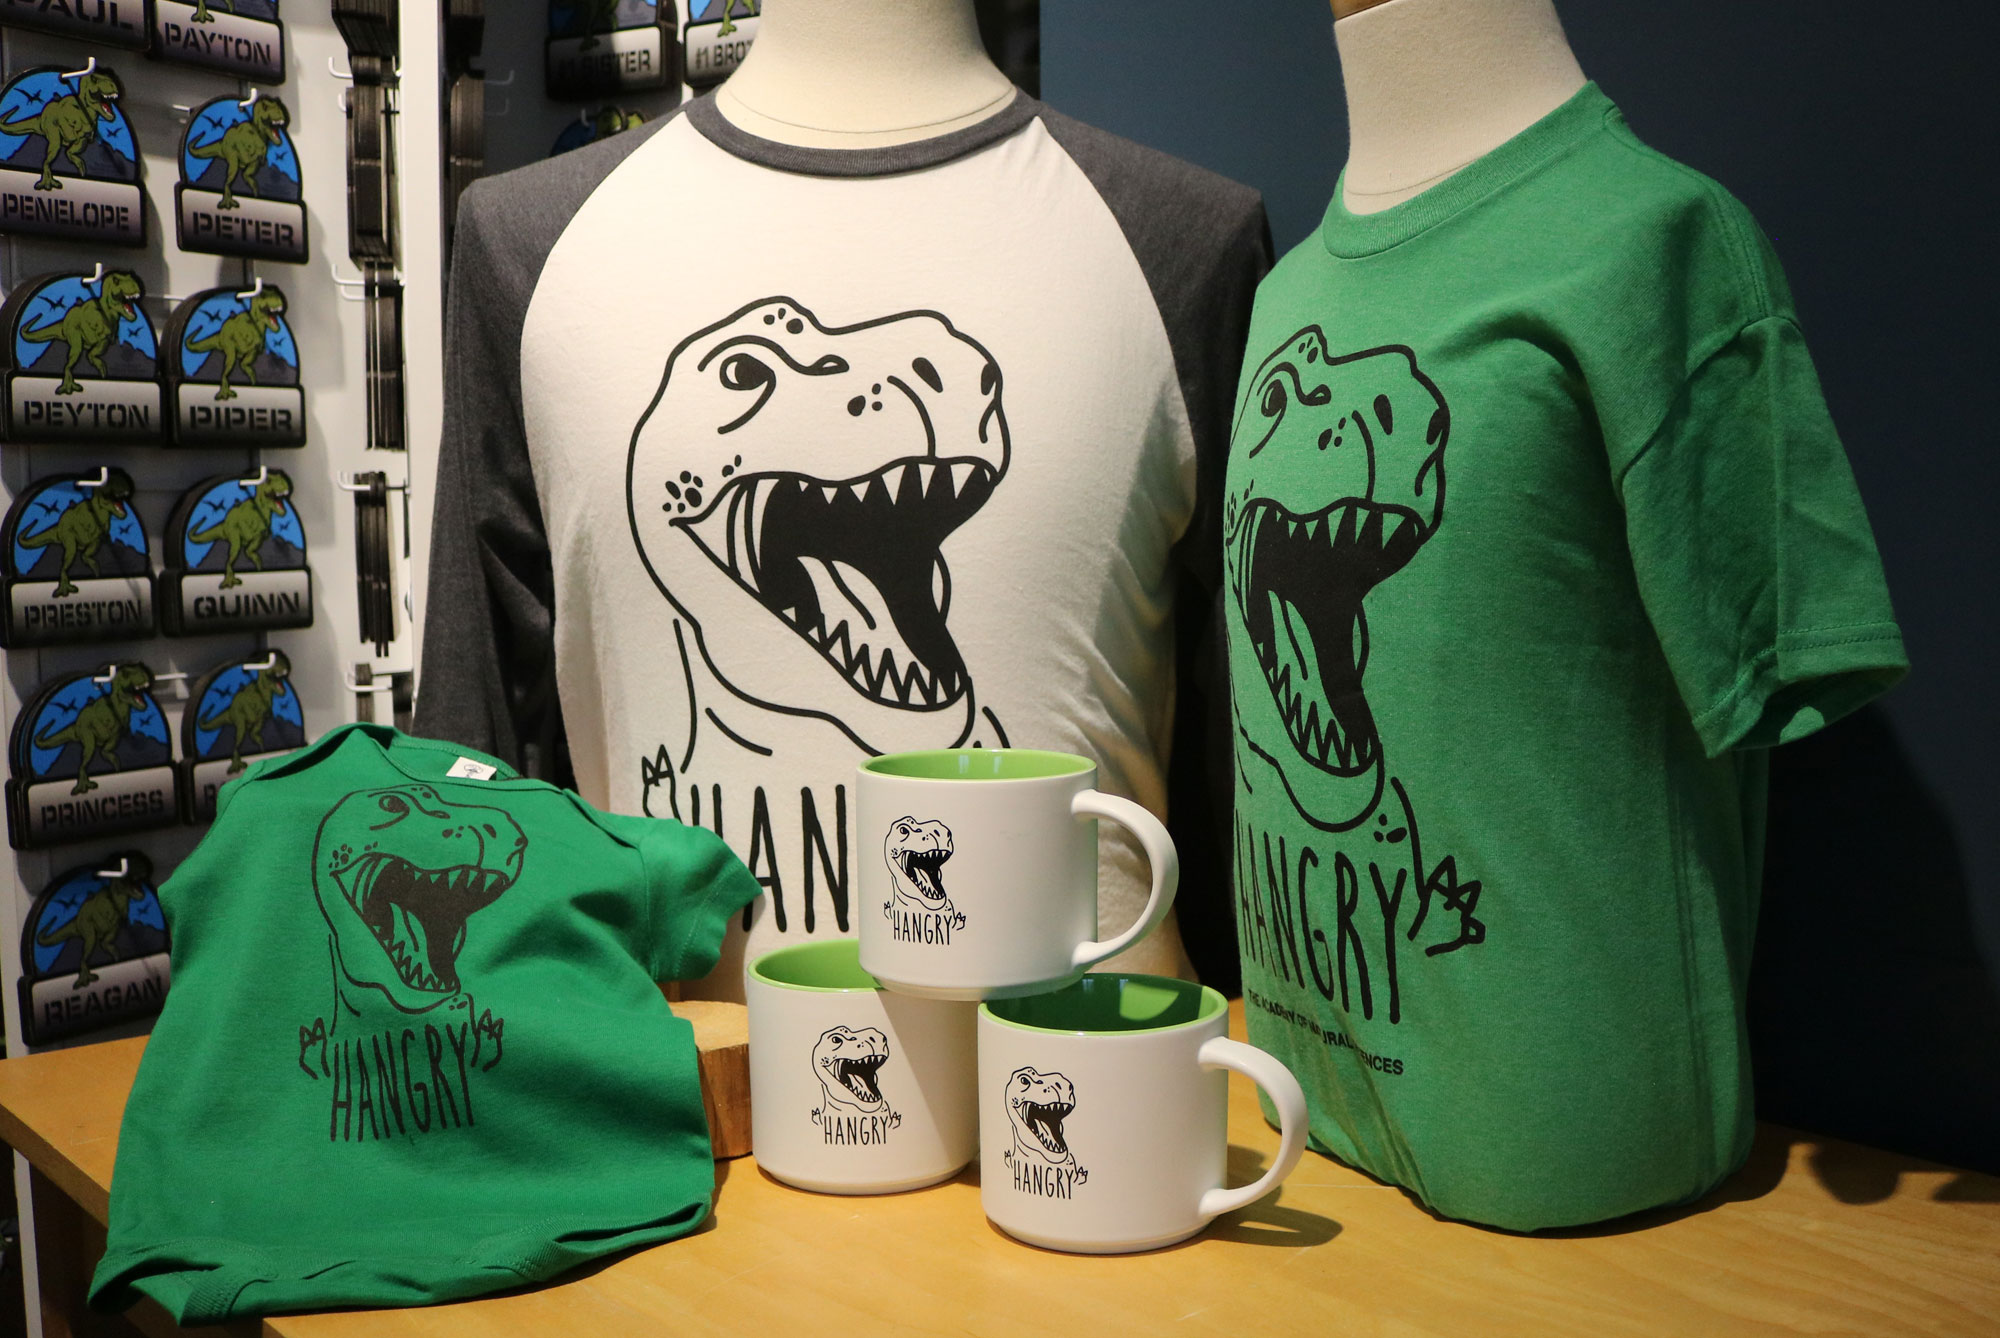 Green youth and onesie hangry shirt with T. rex, white adult baseball hangry tee, white hangry mug with T. rex with green interior